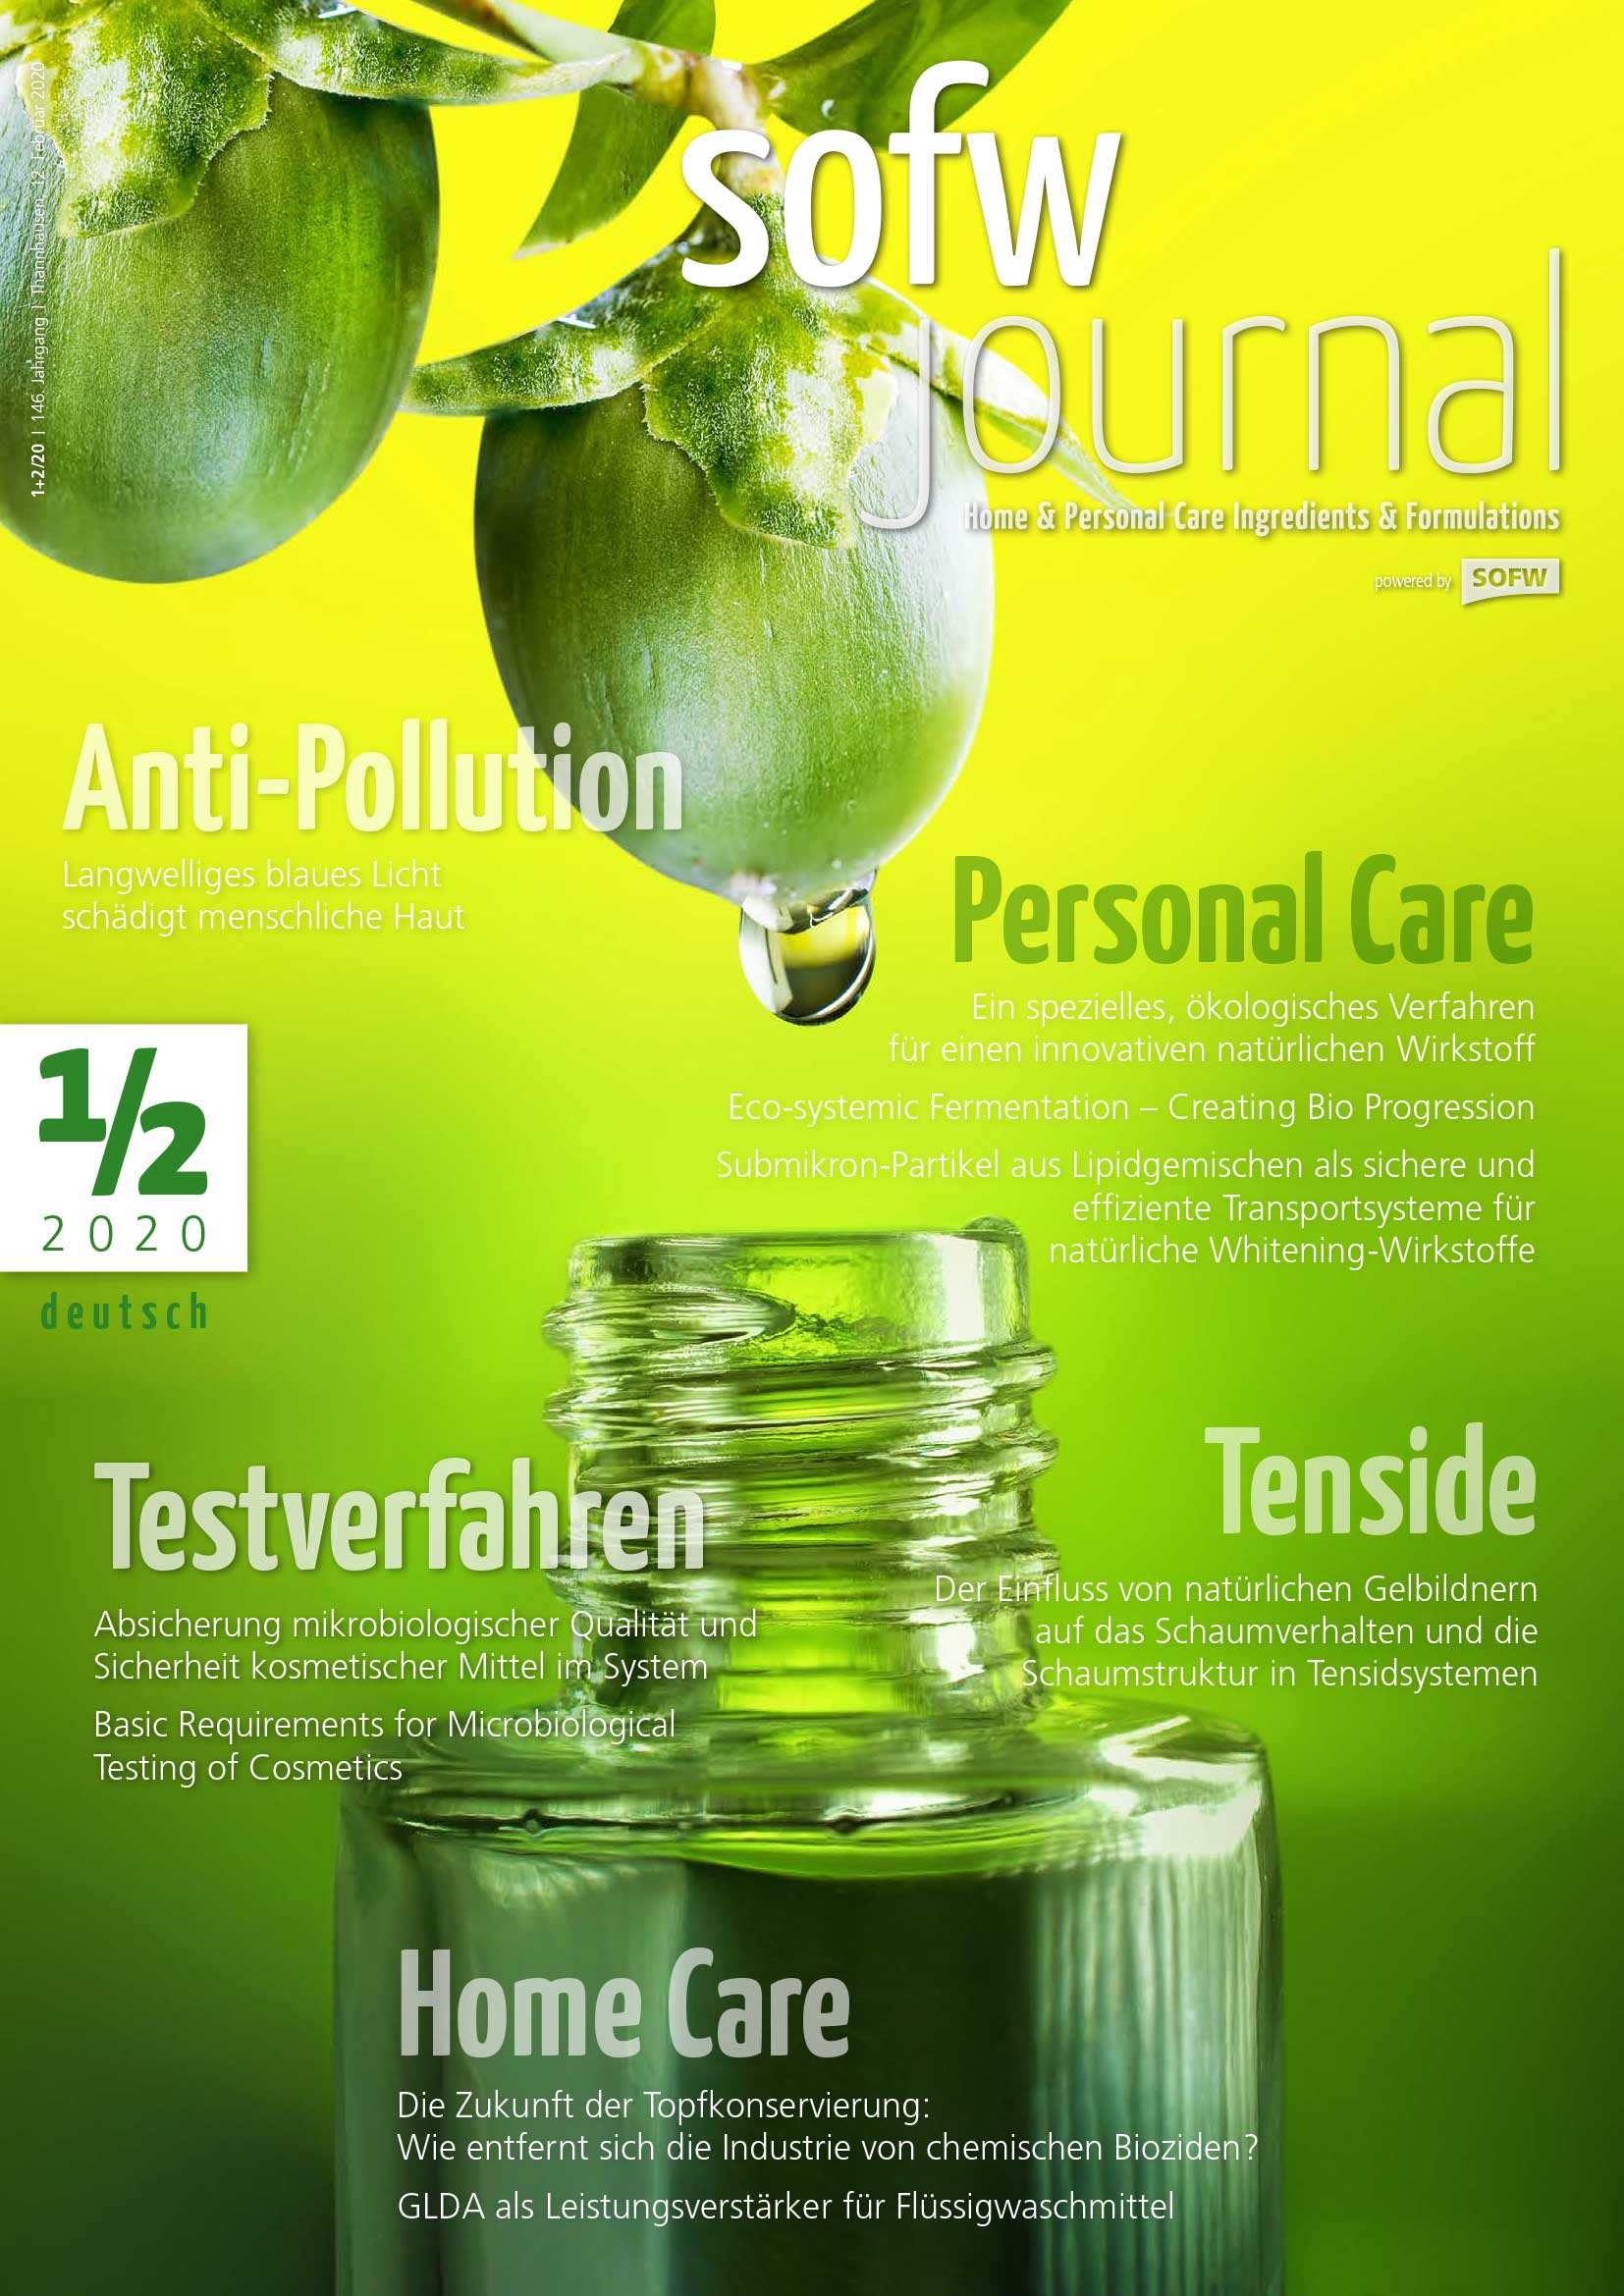 sofwjournal_de_2020_01_cover_1264240592